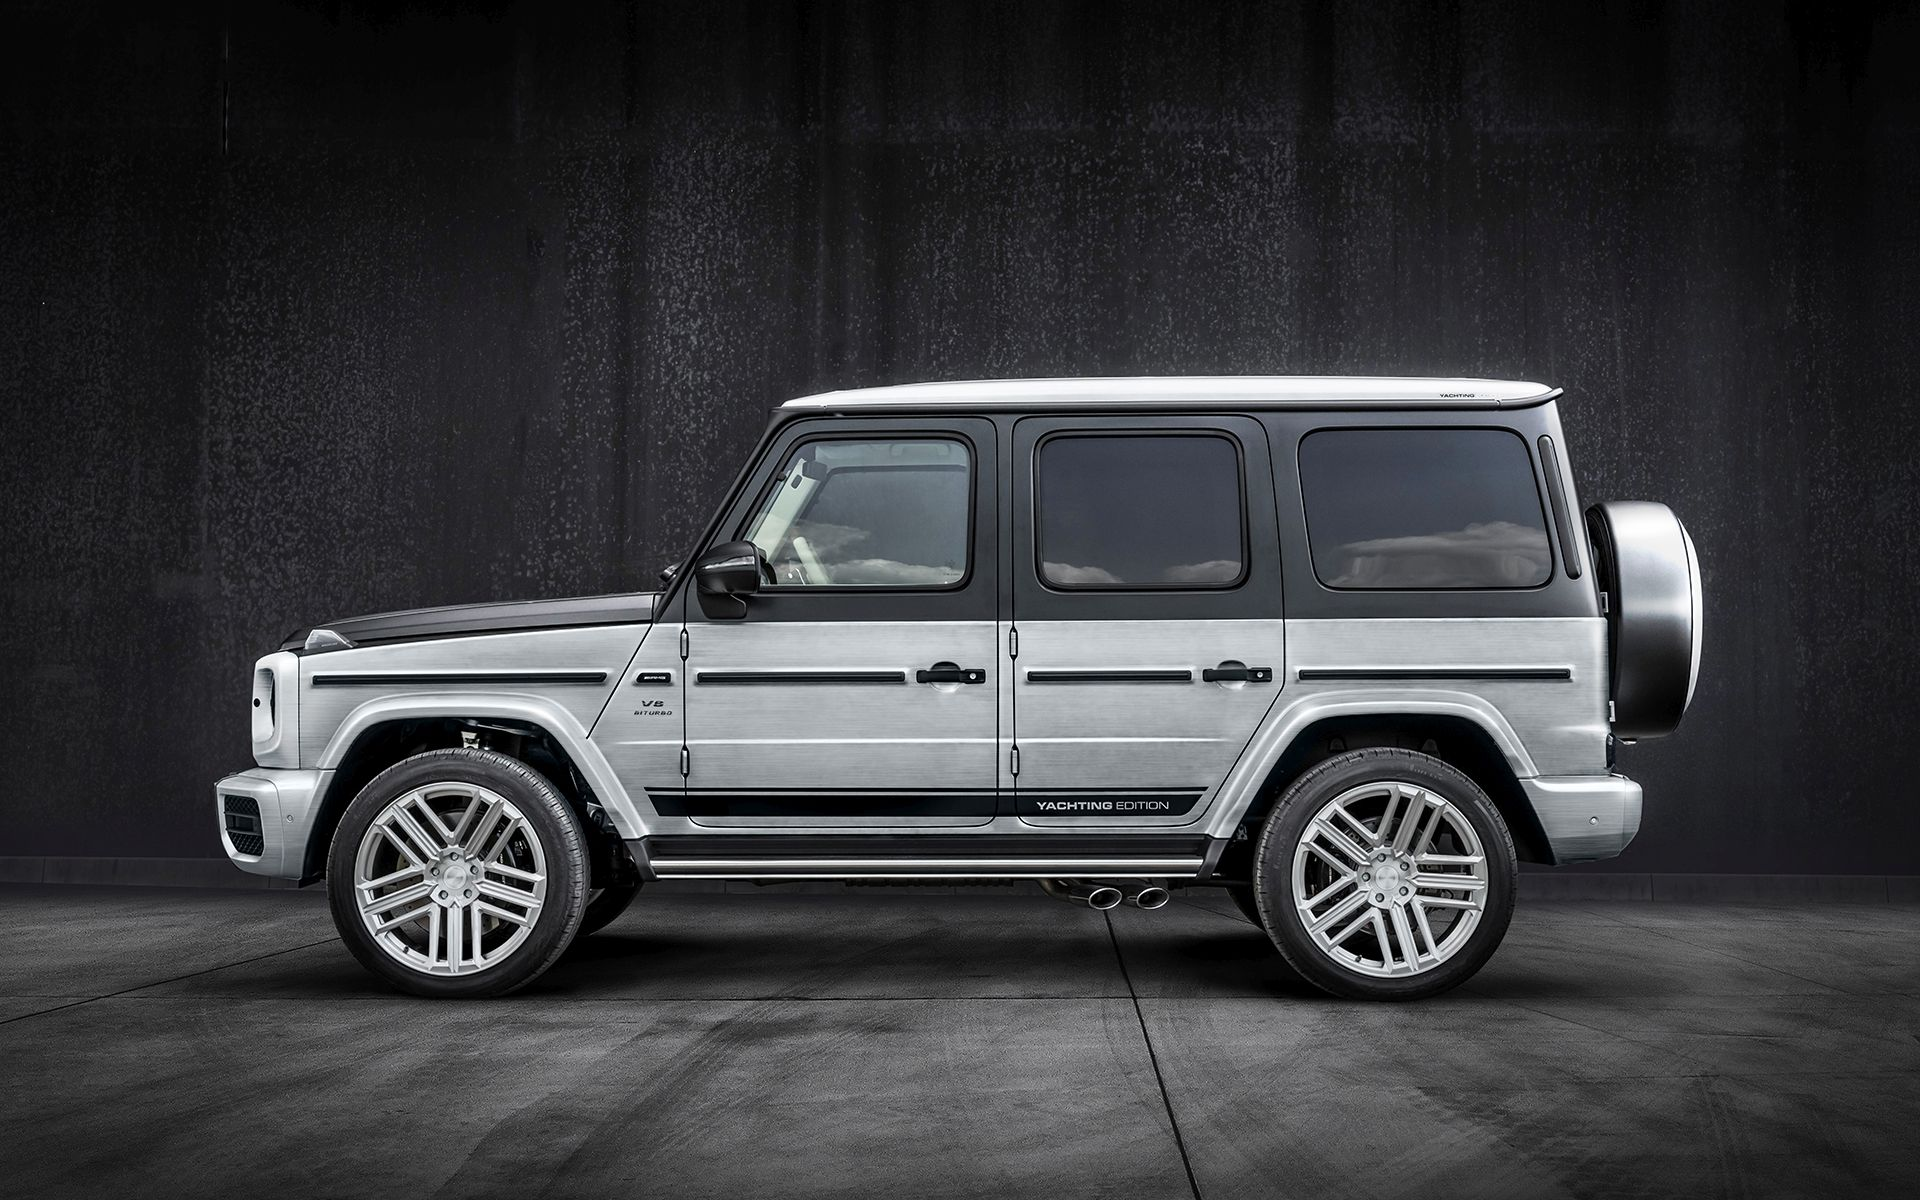 Mercedes-Benz G63 AMG Yachting Edition